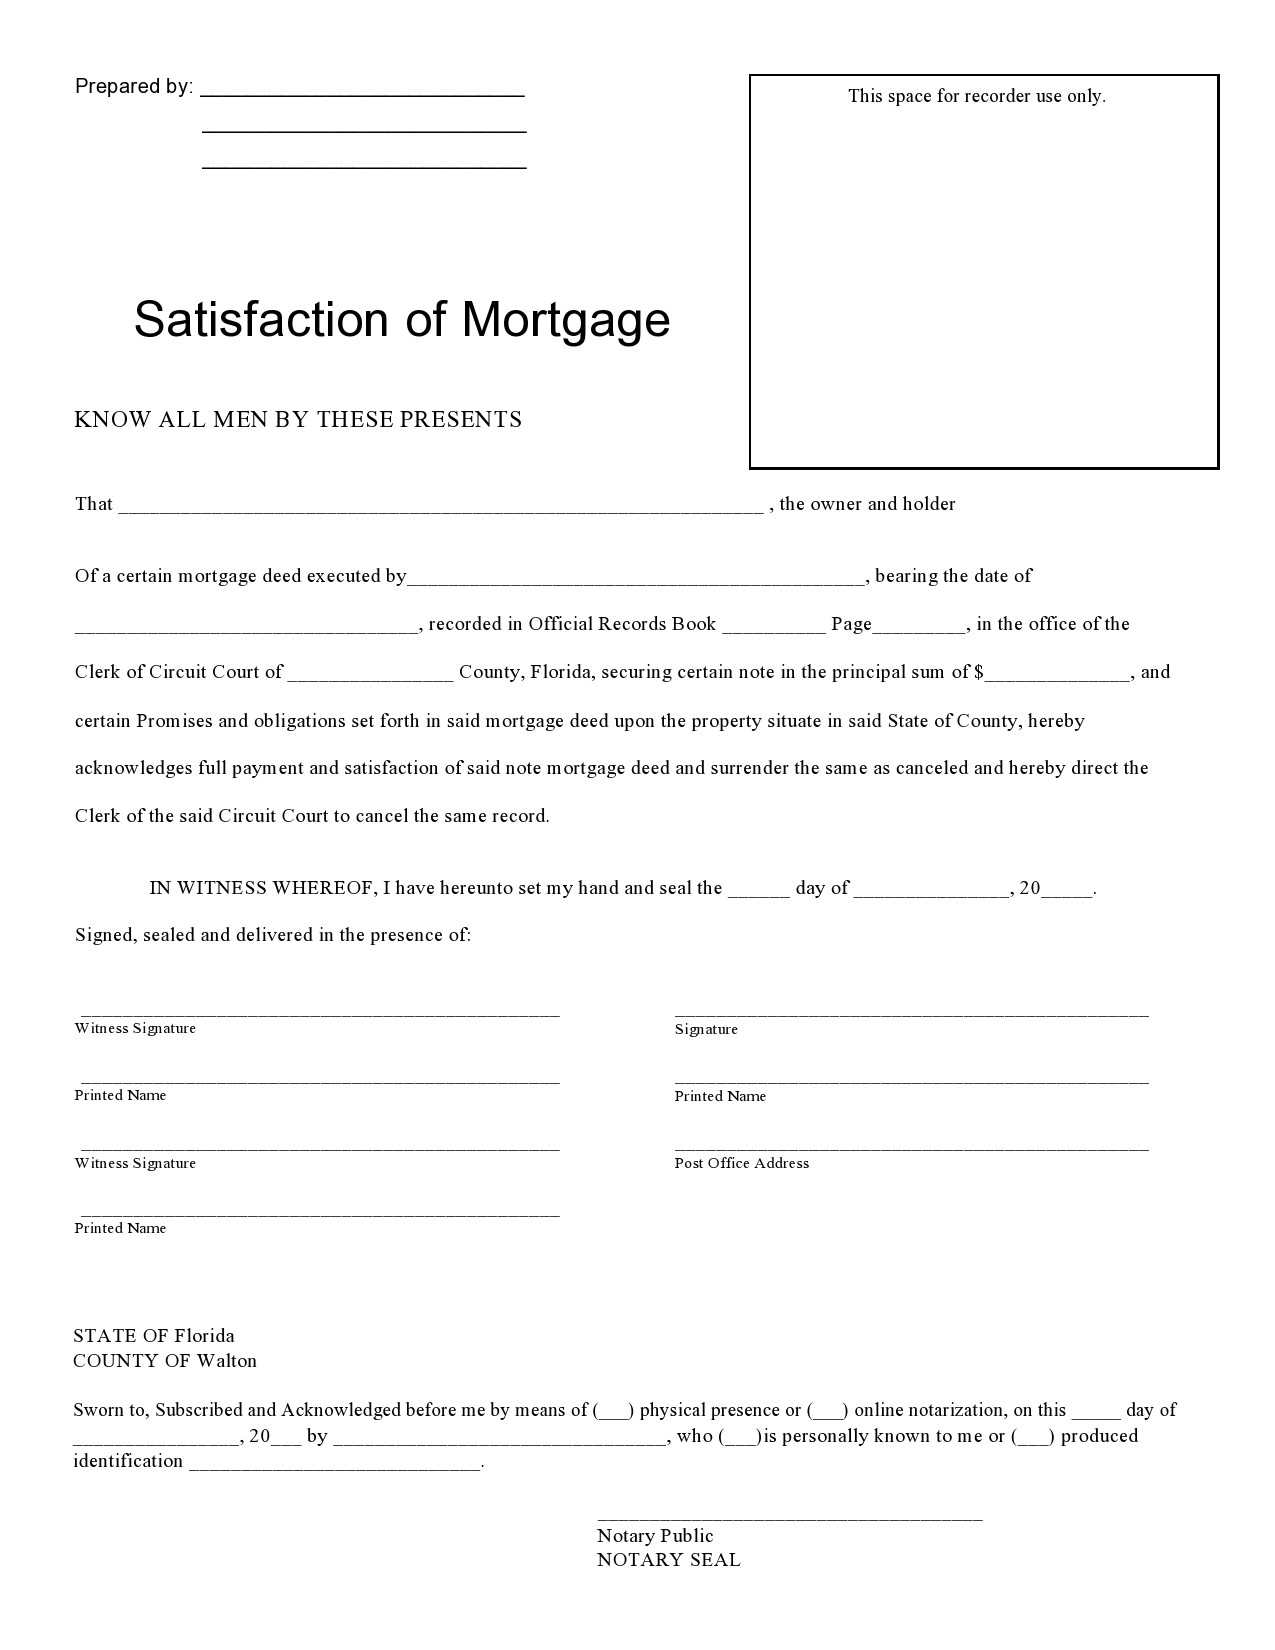 Free satisfaction of mortgage 09